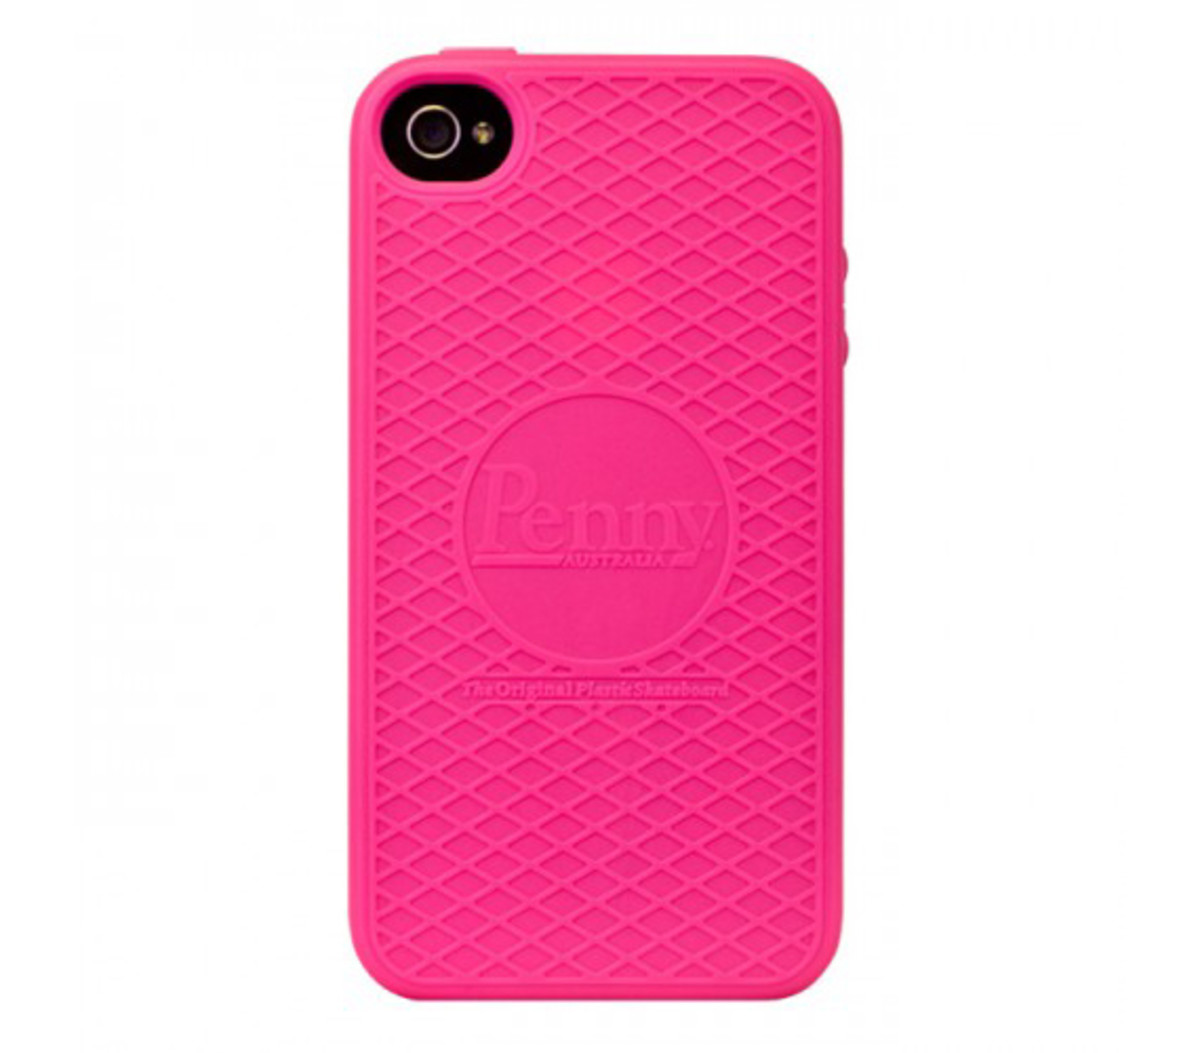 penny-skateboards-iphone-cover-11